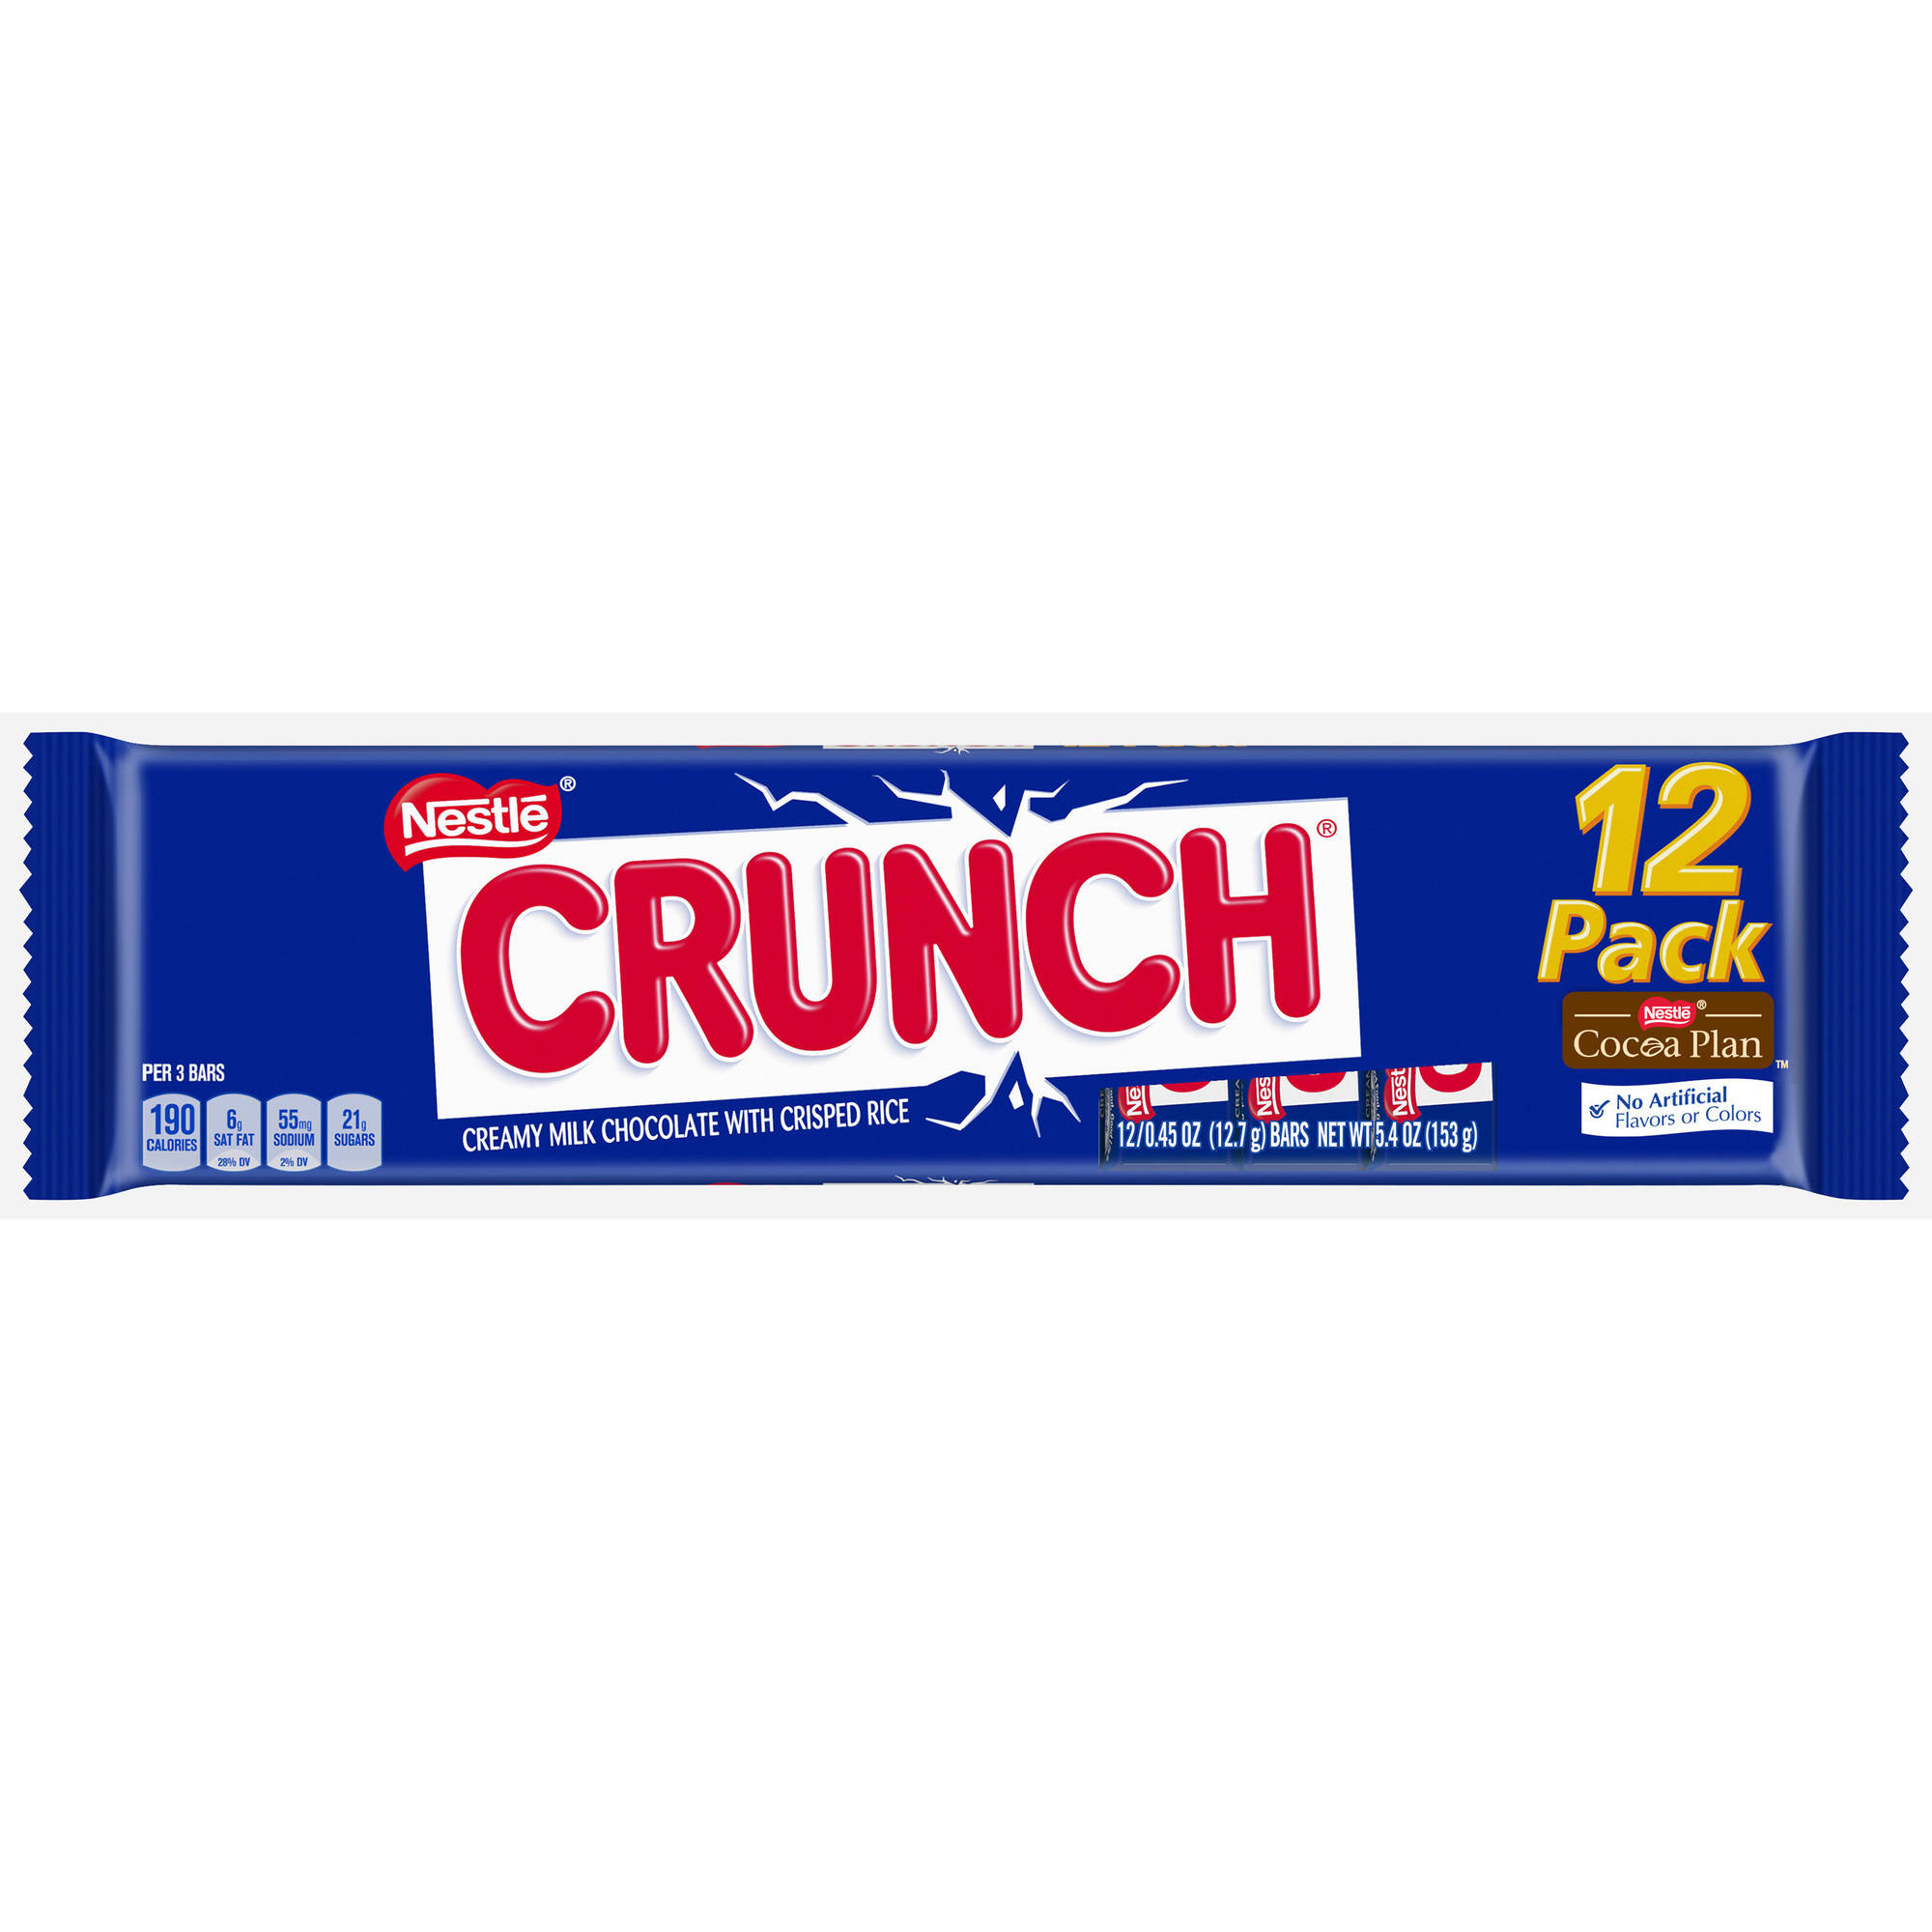 Nestle Crunch Candy Bars, 0.45 oz, 12 count